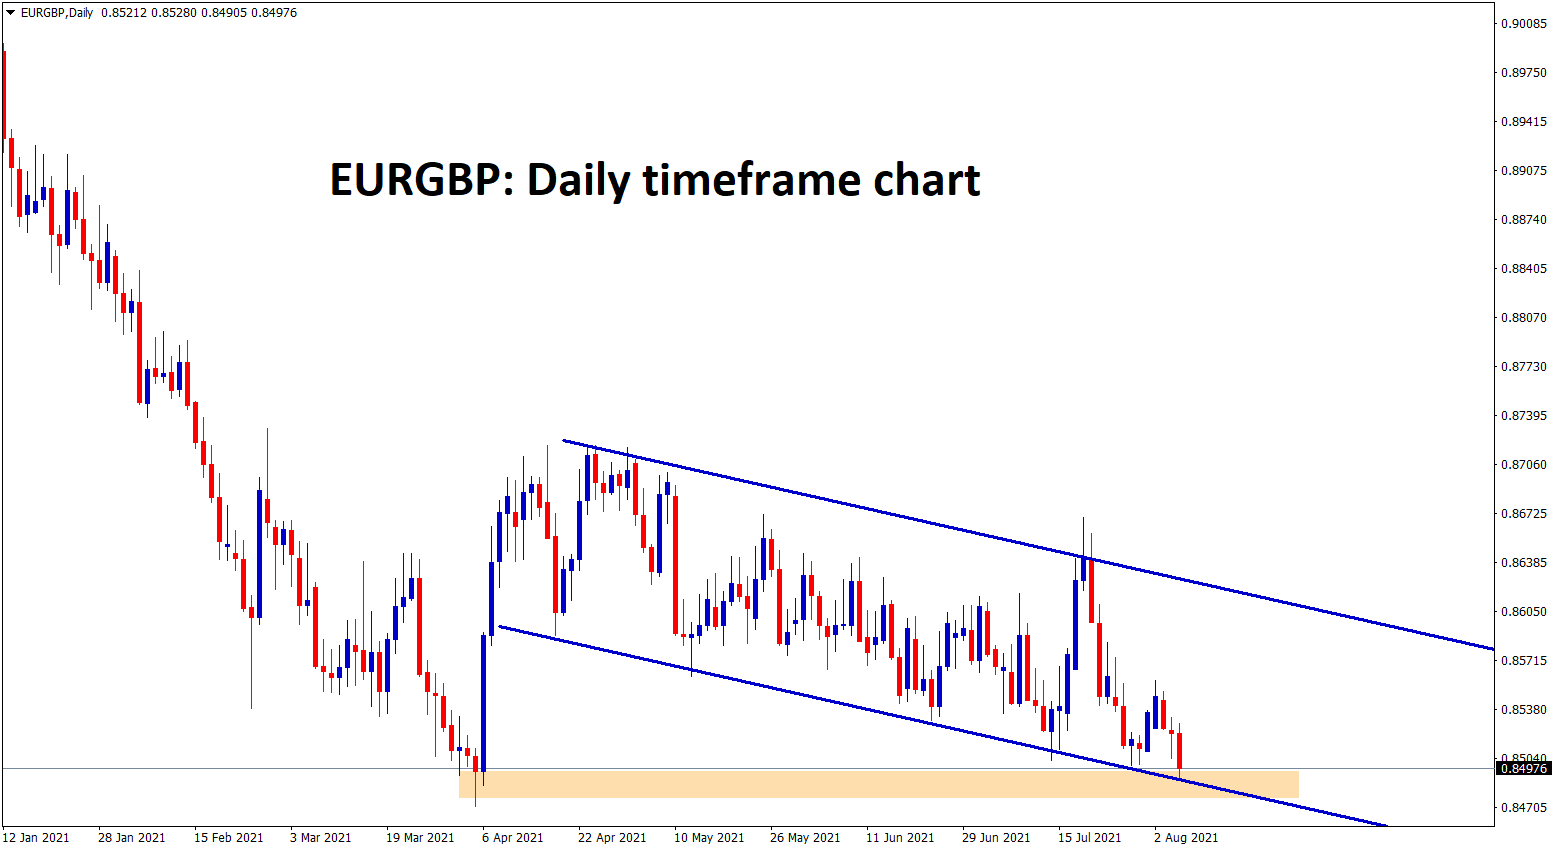 EURGBP at the lower low level and the recent support zone. wait for breakout or reversal